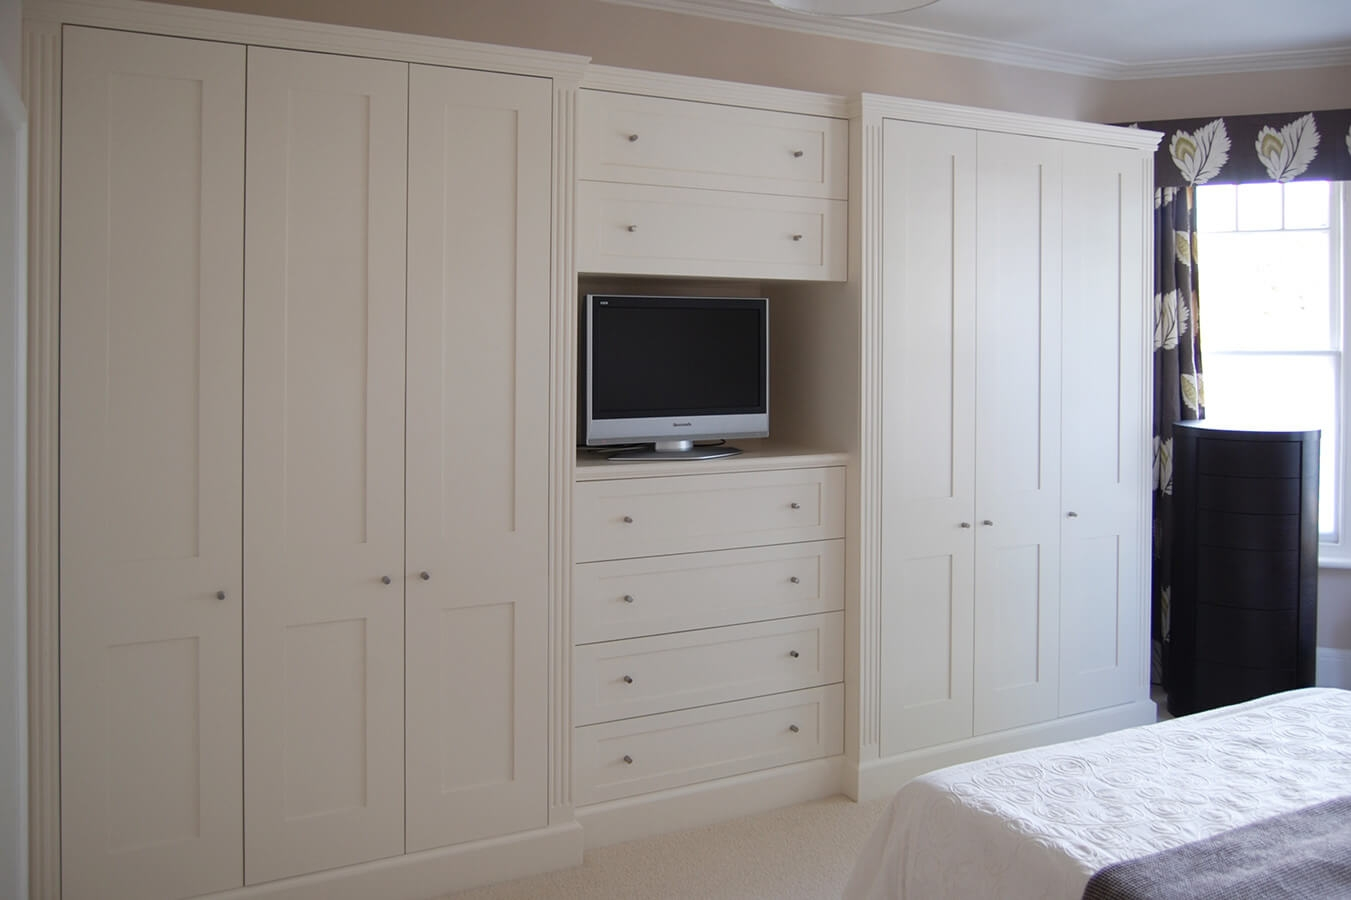 Corner Fitted Wardrobes Corner Fitted Wardrobe Useful Design Throughout Drawers For Fitted Wardrobes (View 15 of 15)